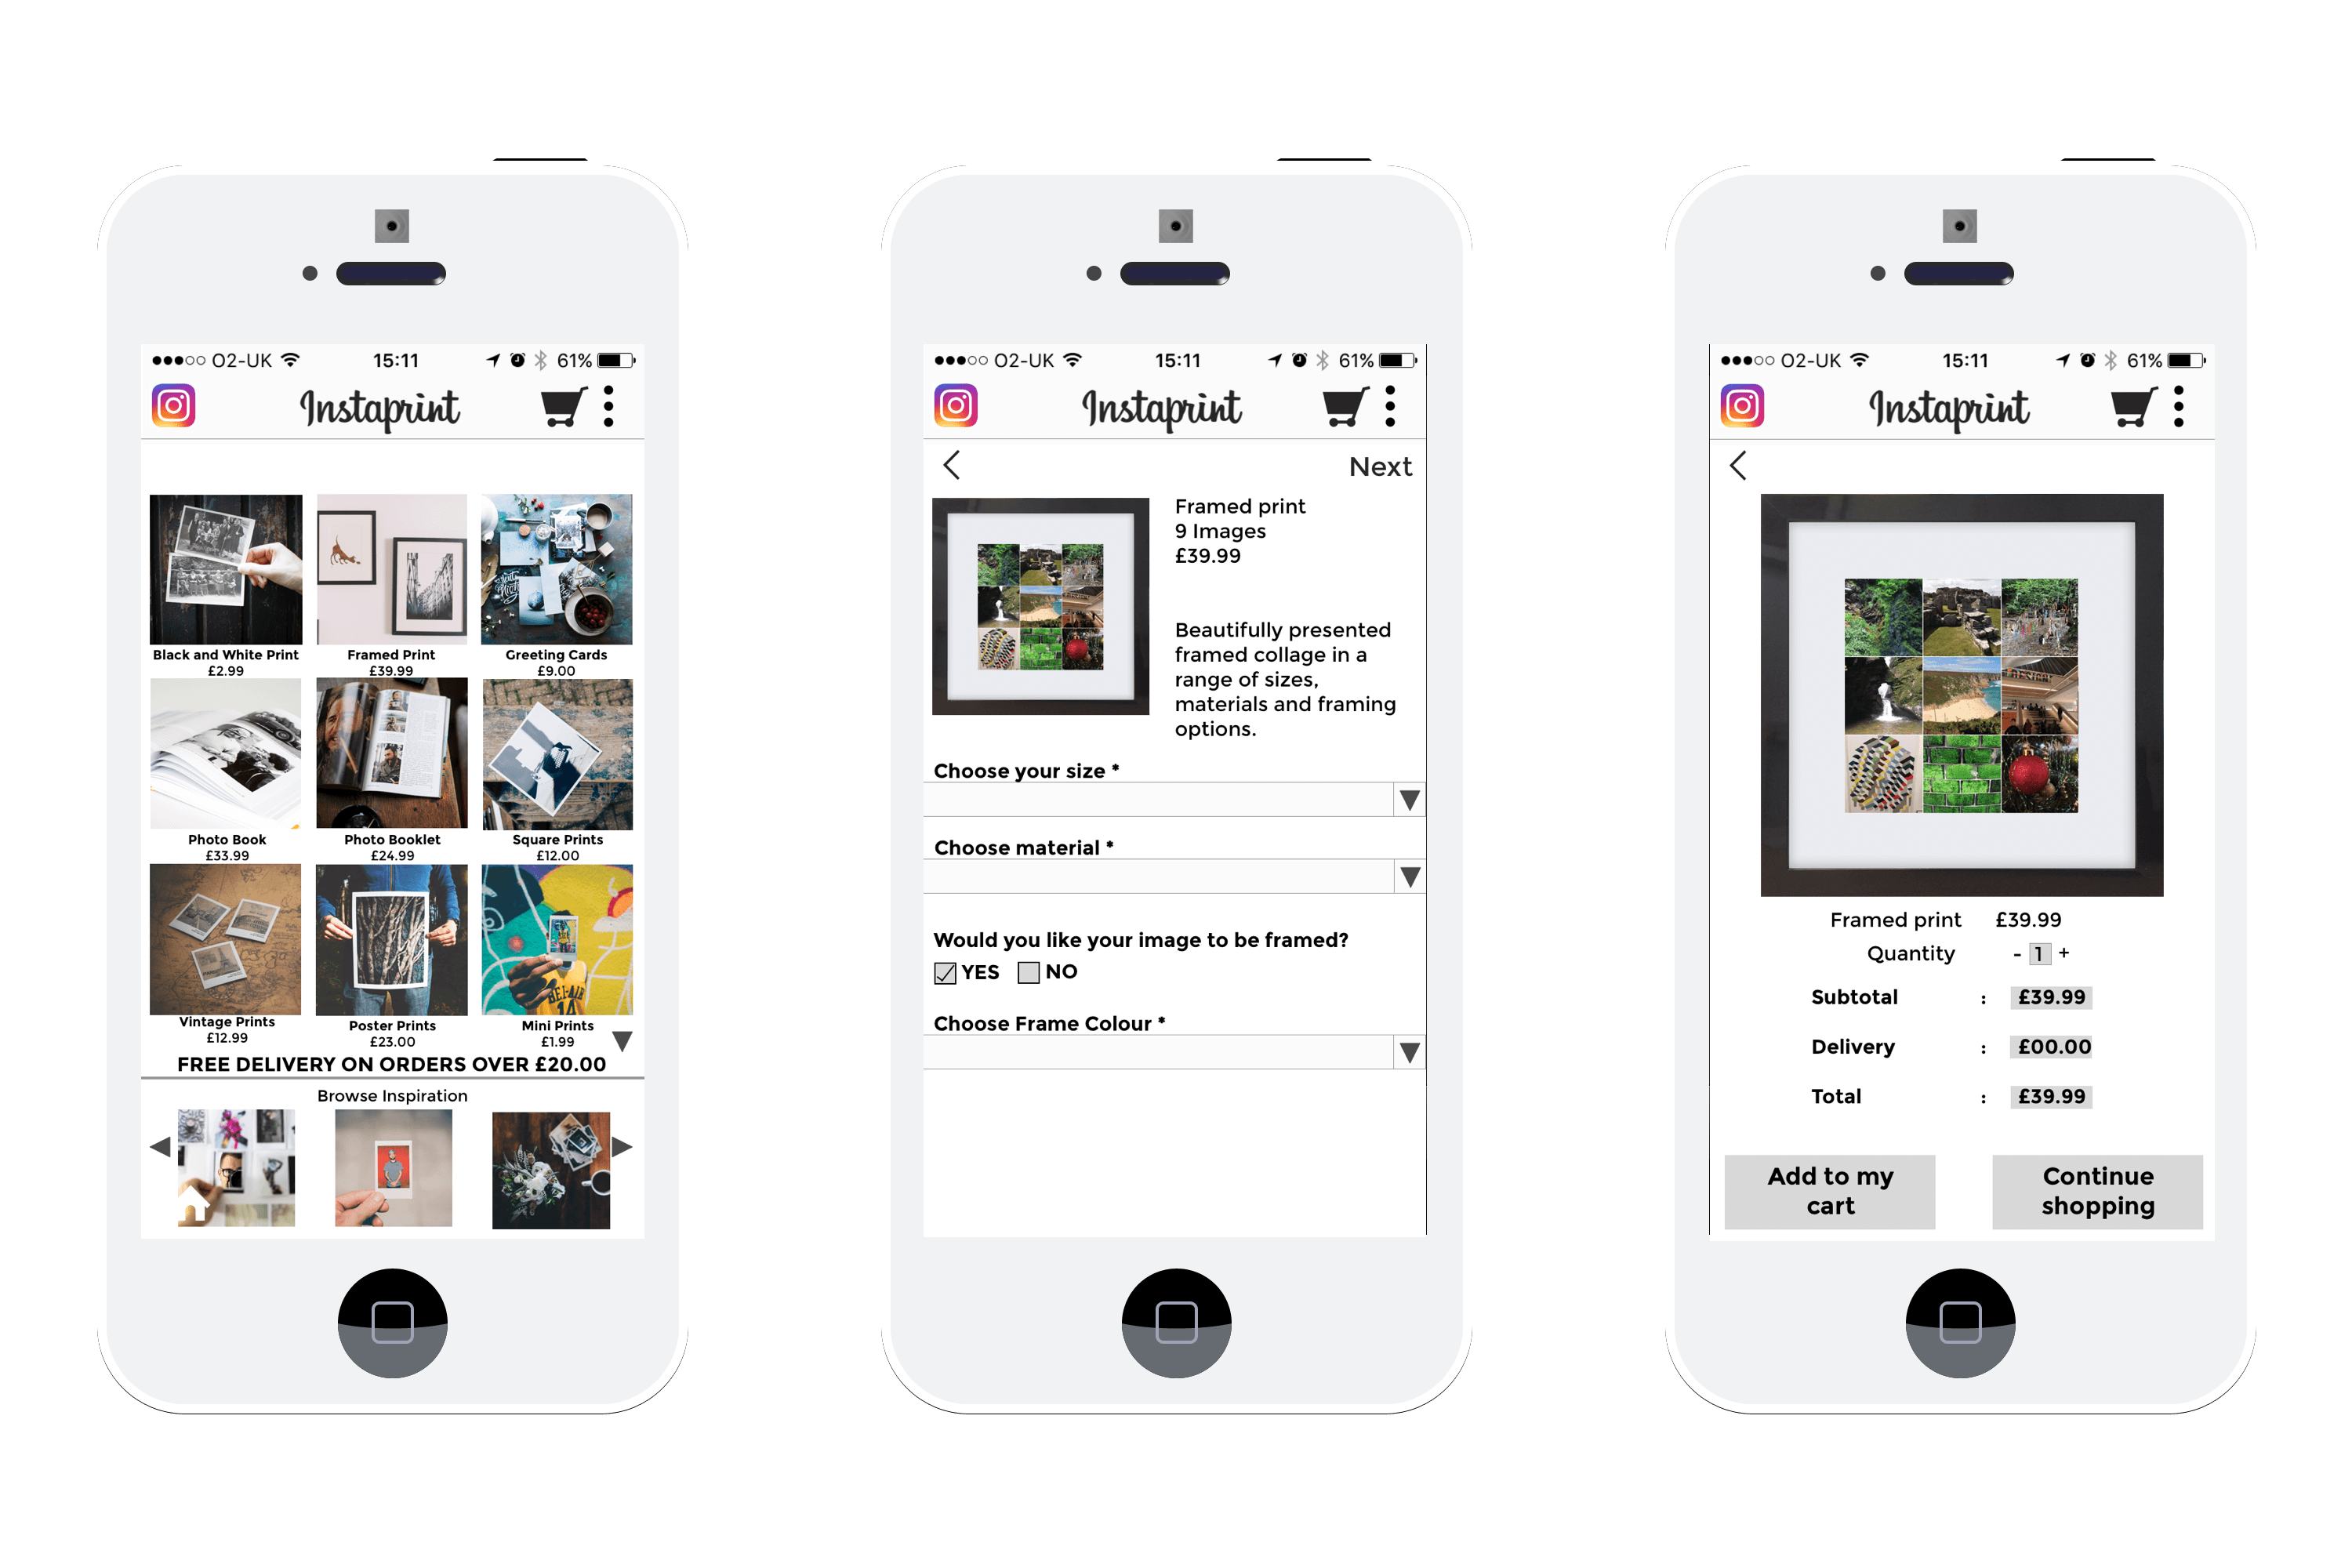 Instagram - Final Key Wireframes